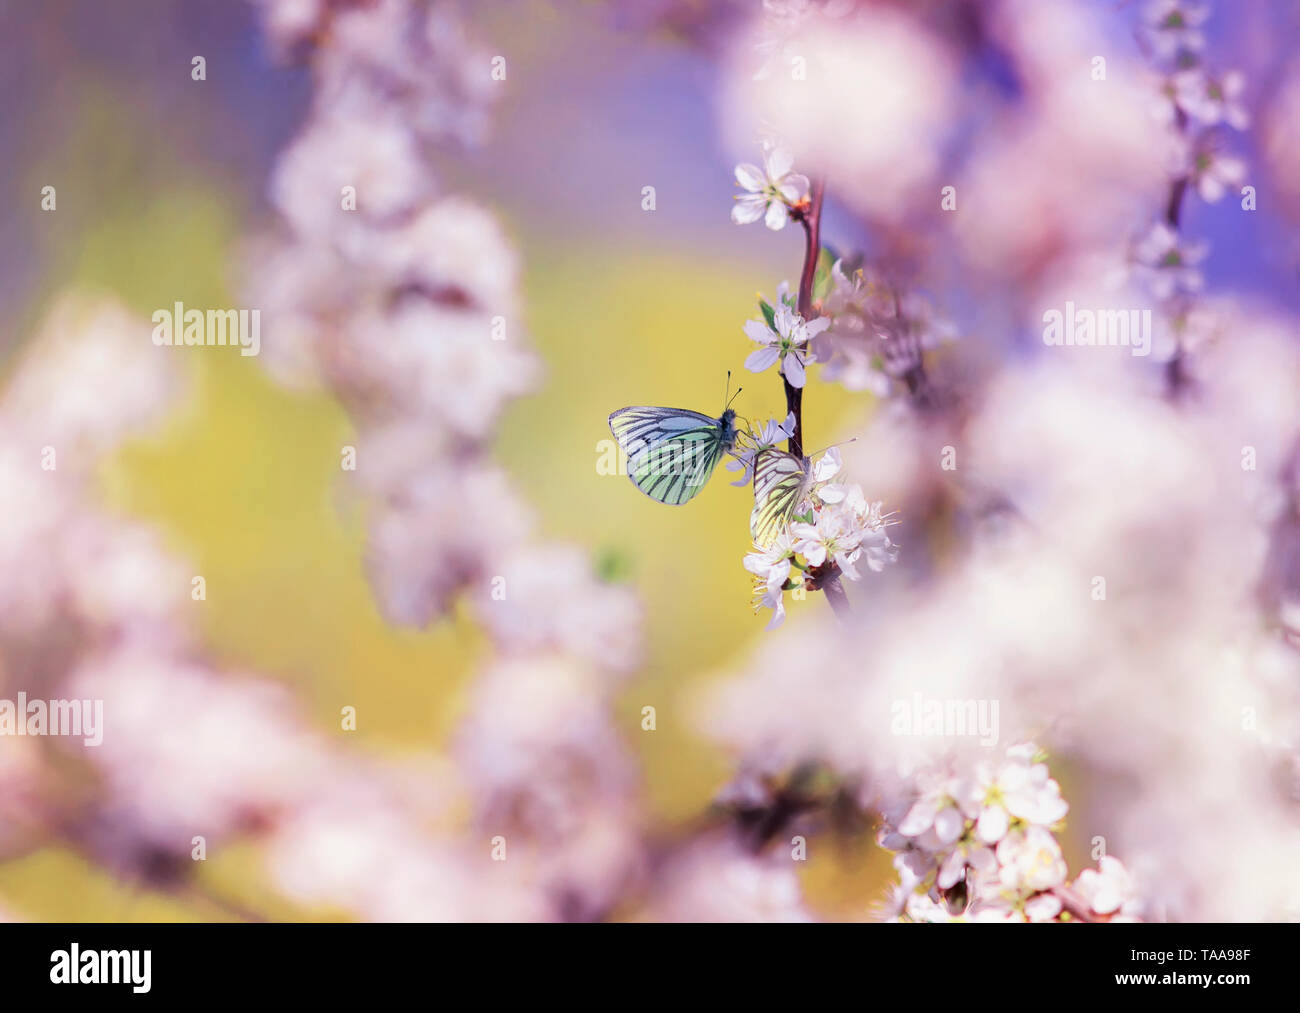 beautiful white butterflies flit over the branches with pink  buds of a flowering shrub in May warm sunny garden - Stock Image